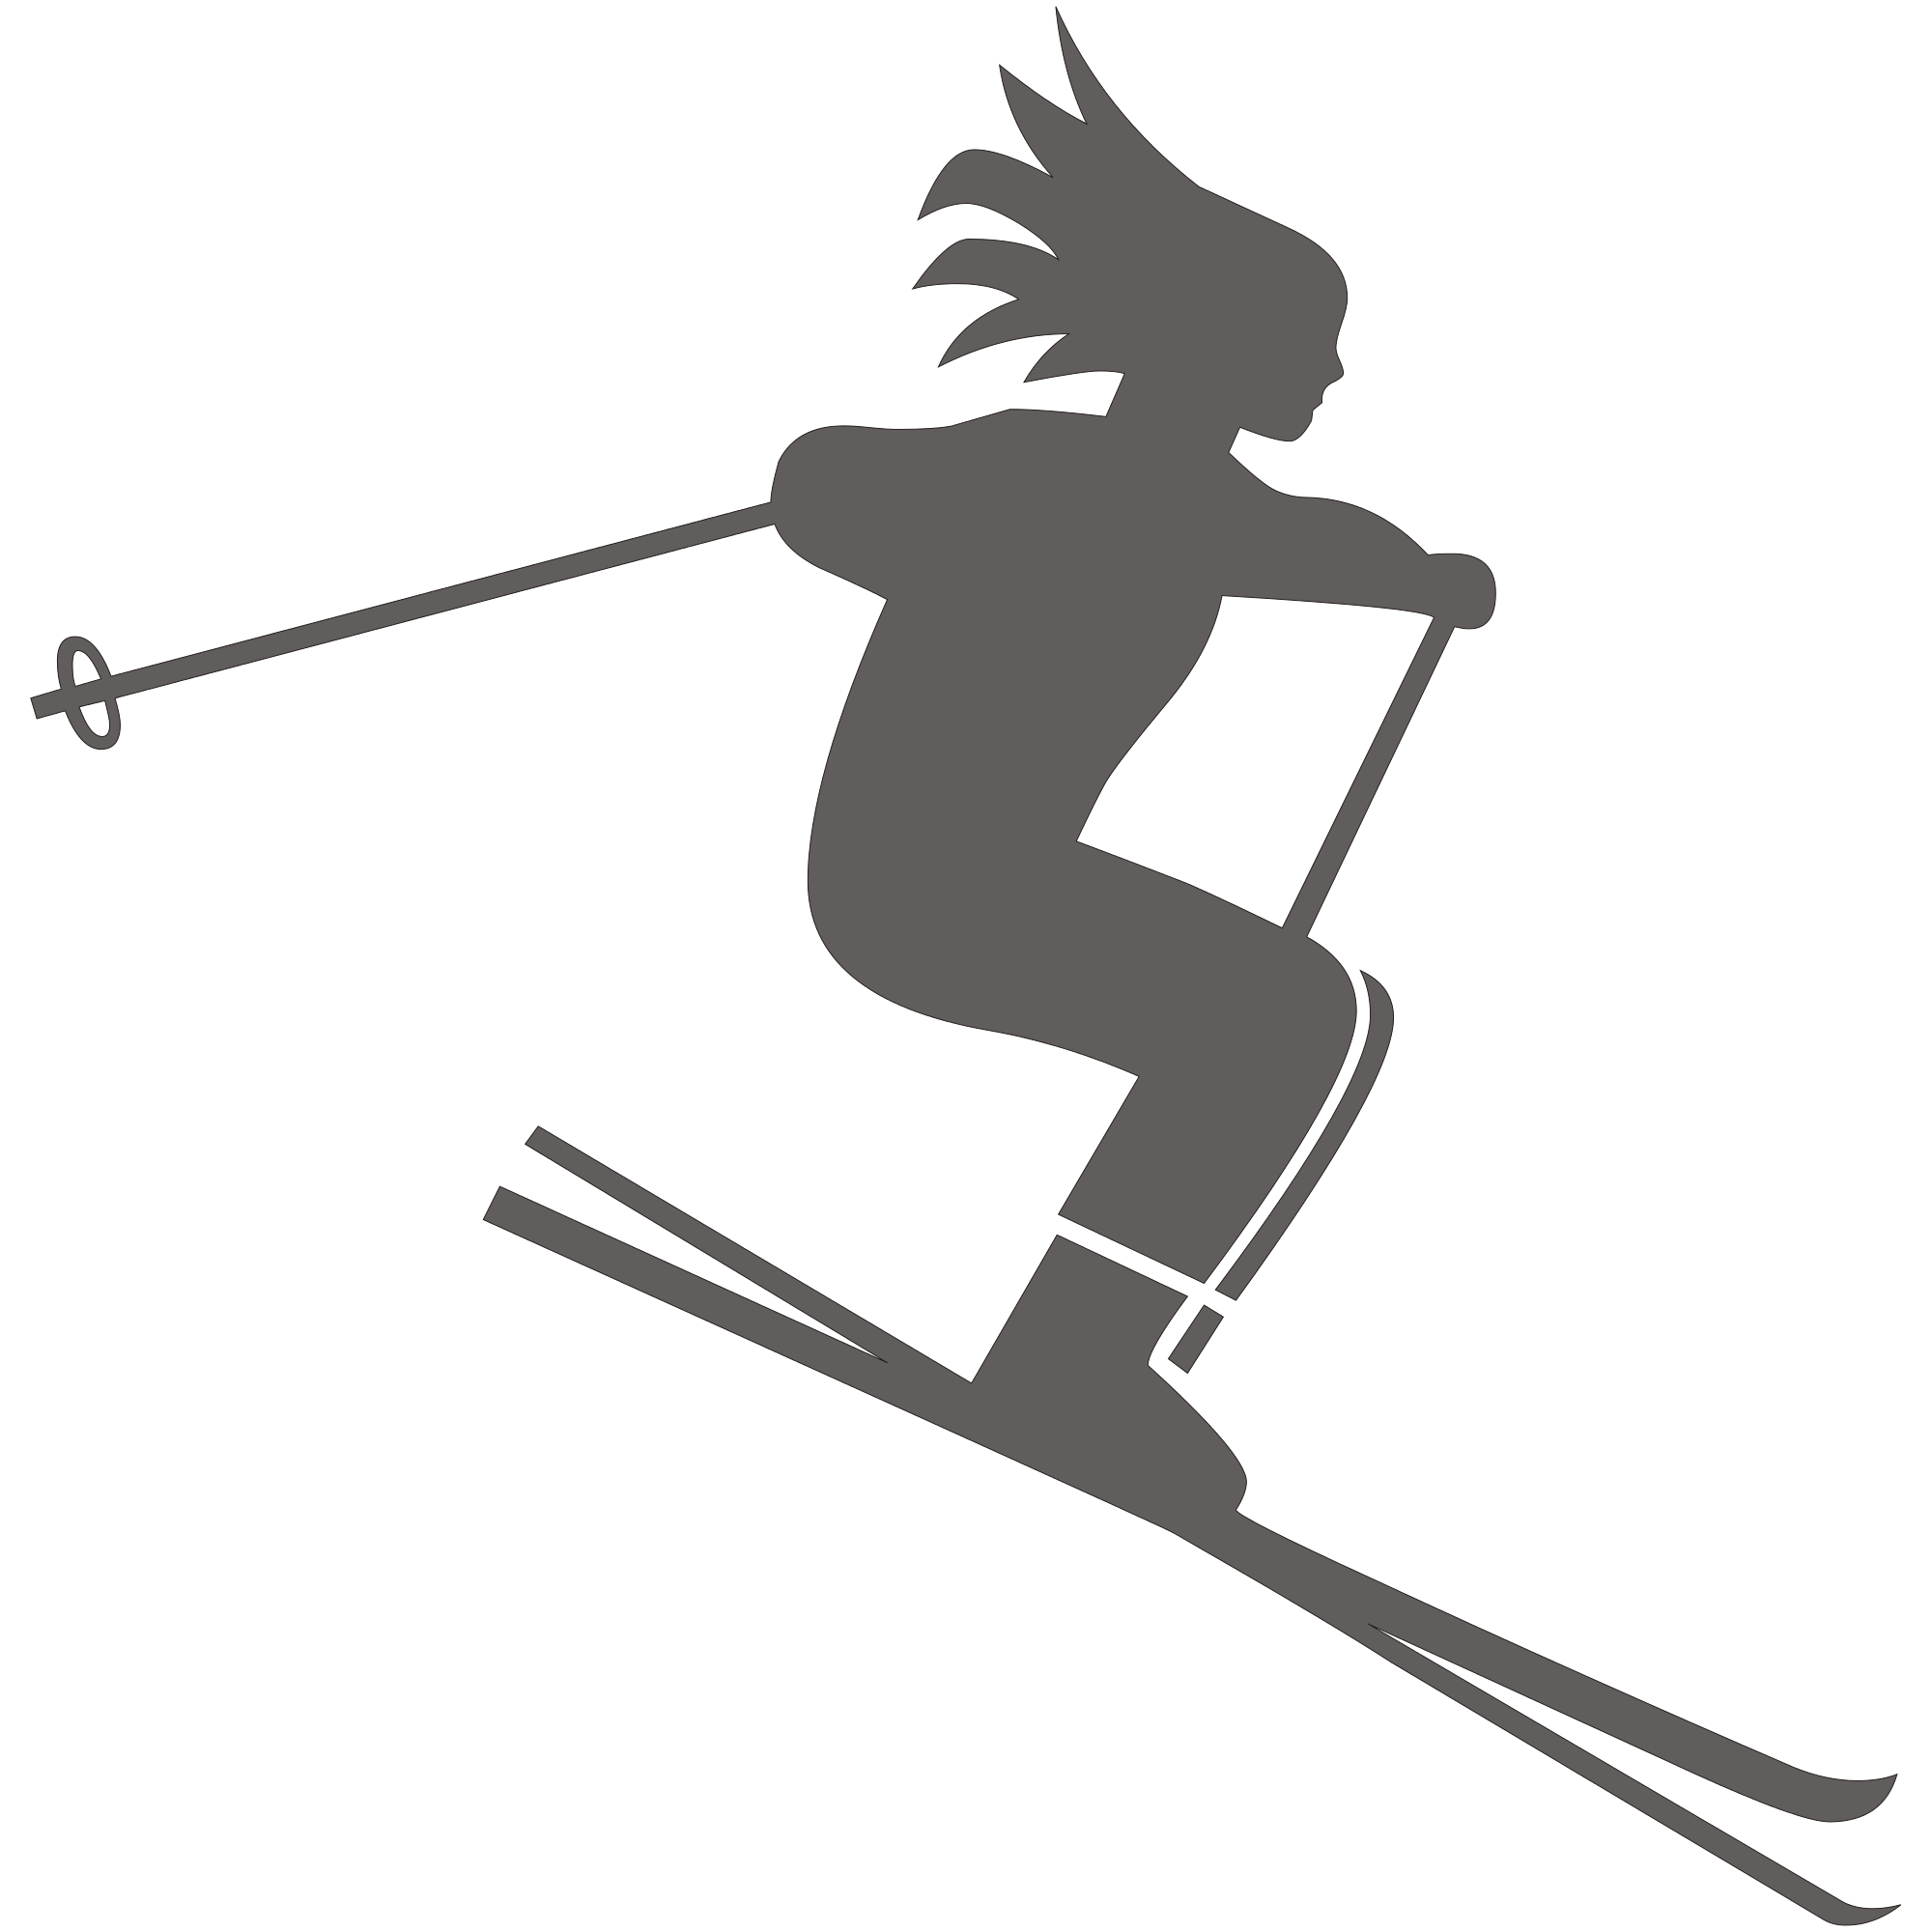 banner transparent Skiing PNG images free download